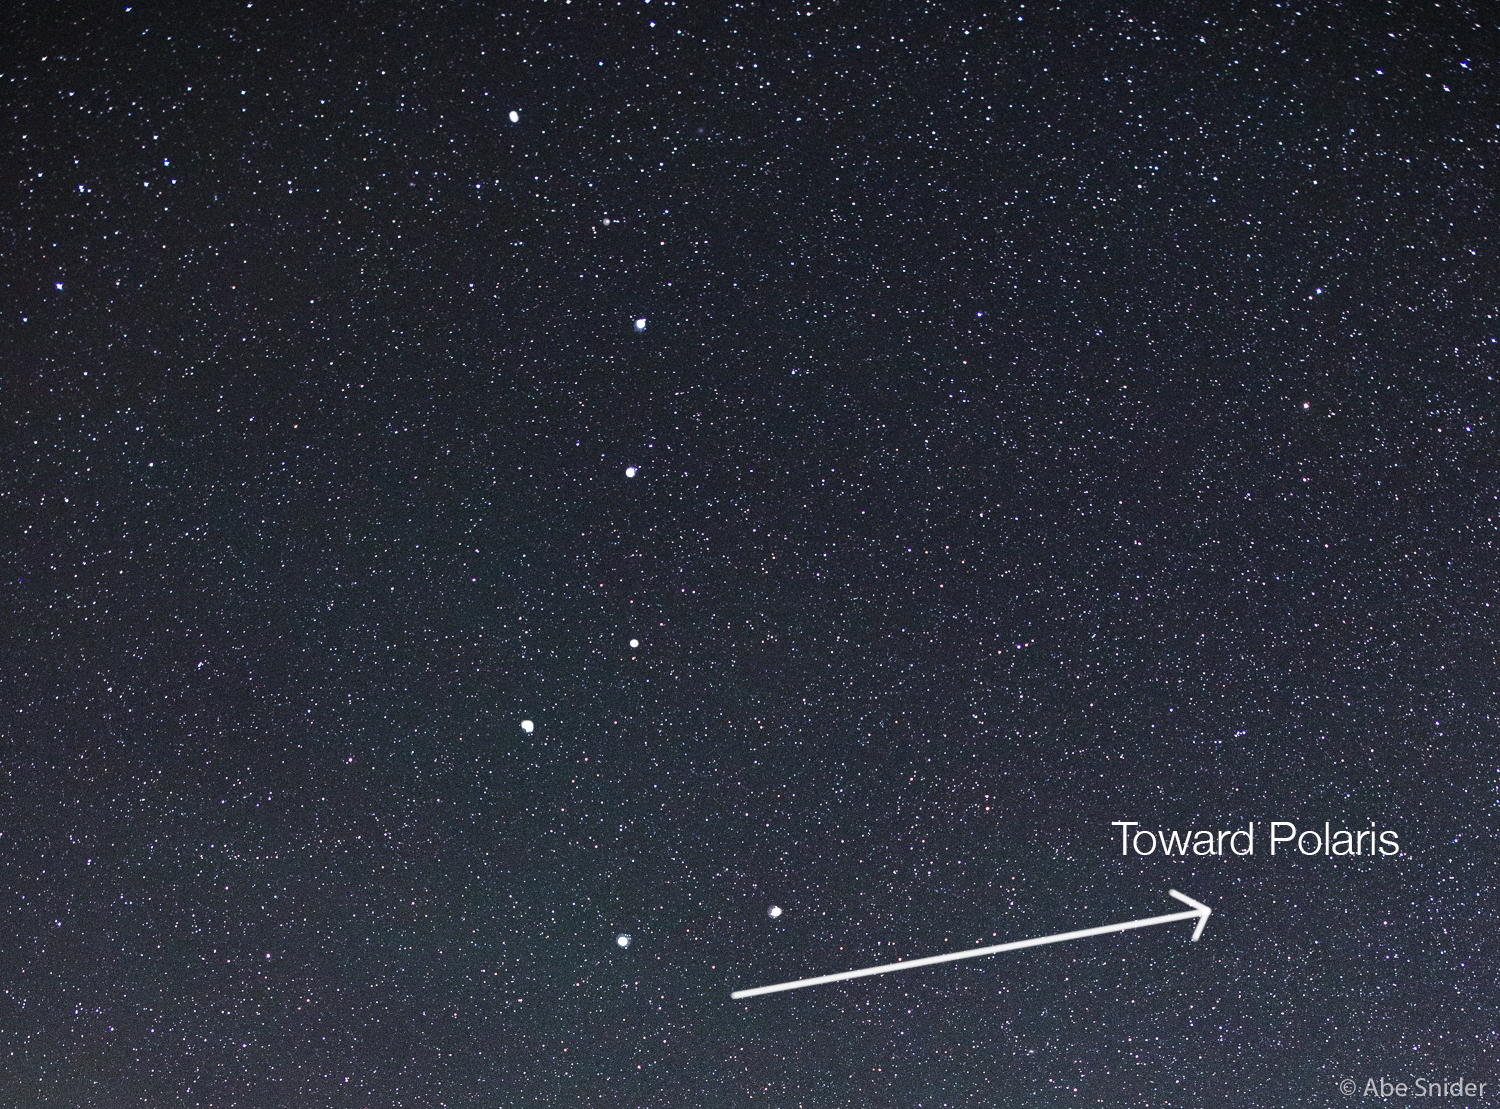 Big Dipper in Northern Sky. See how the edge of the cup points towards Polaris?